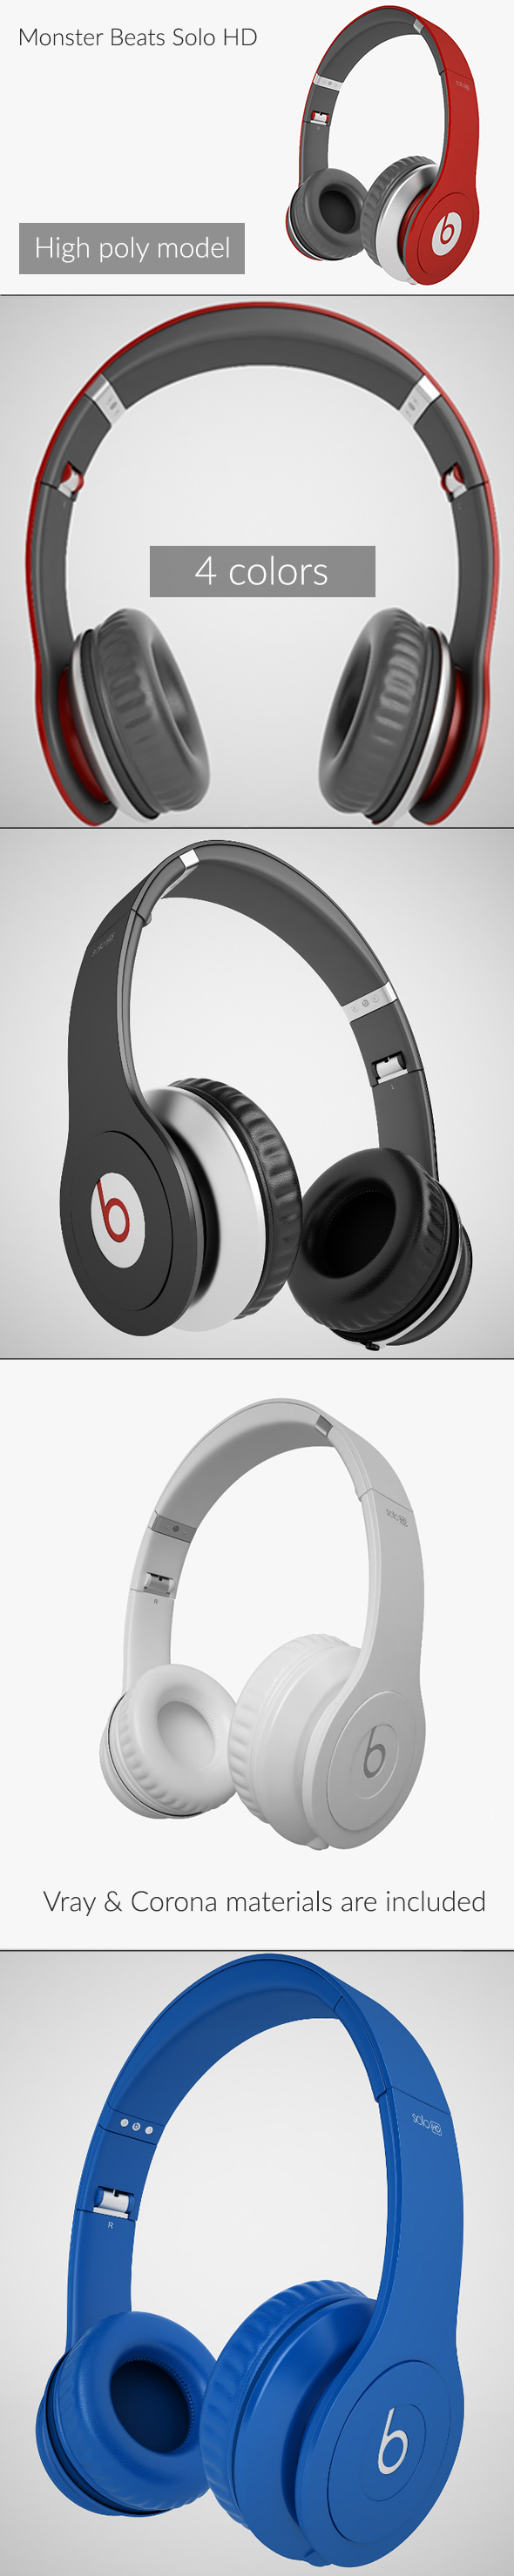 Monster Beats Solo HD - 3DOcean Item for Sale